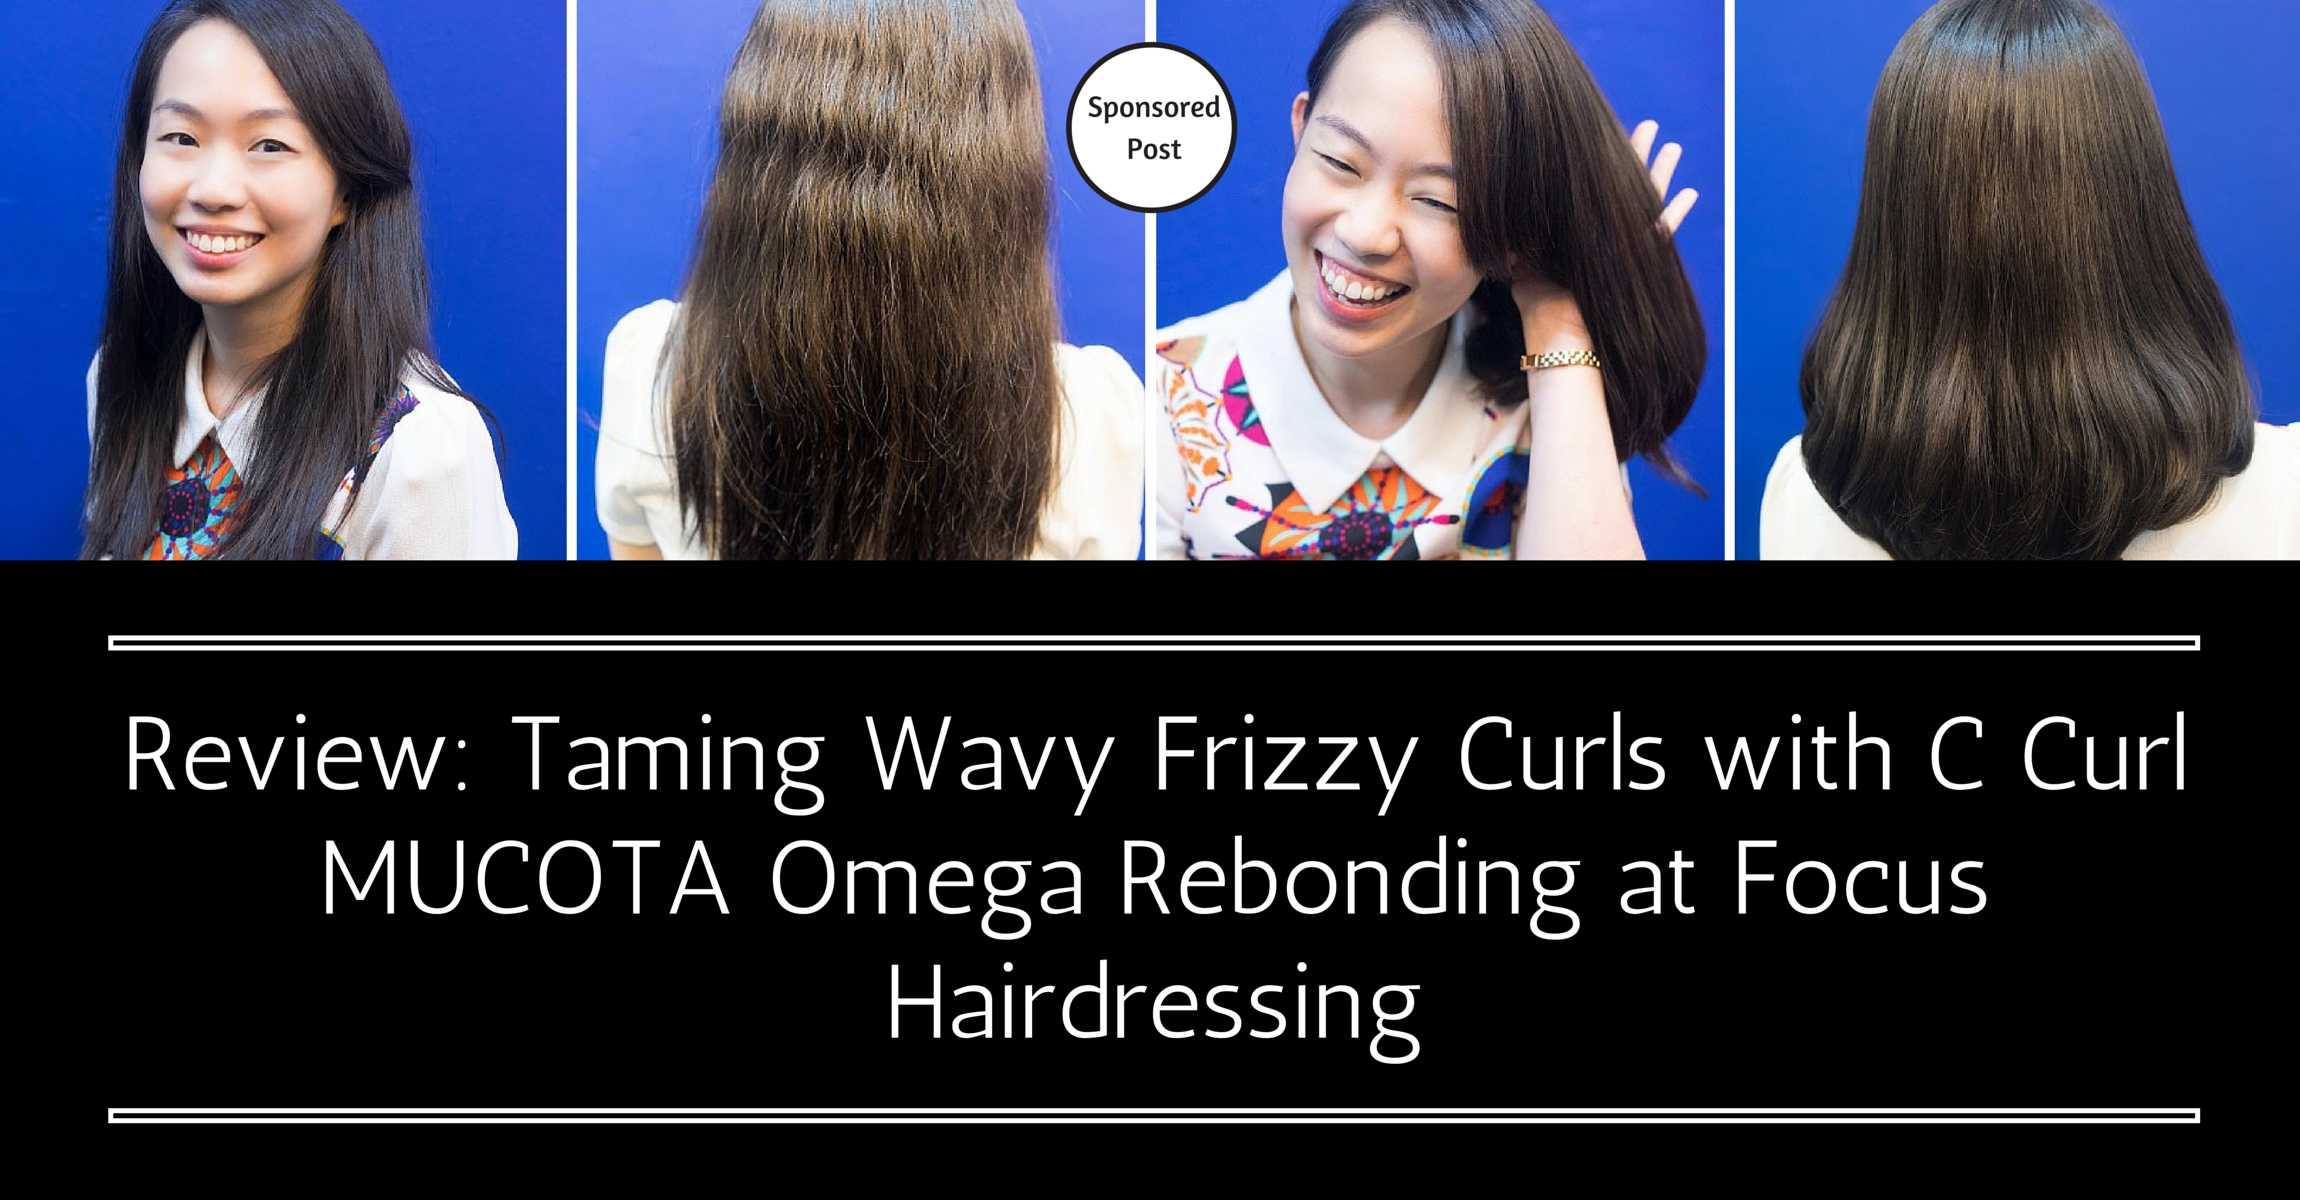 Taming Wavy Frizzy Curls with C Curl MUCOTA Omega Rebonding at Focus Hairdressing